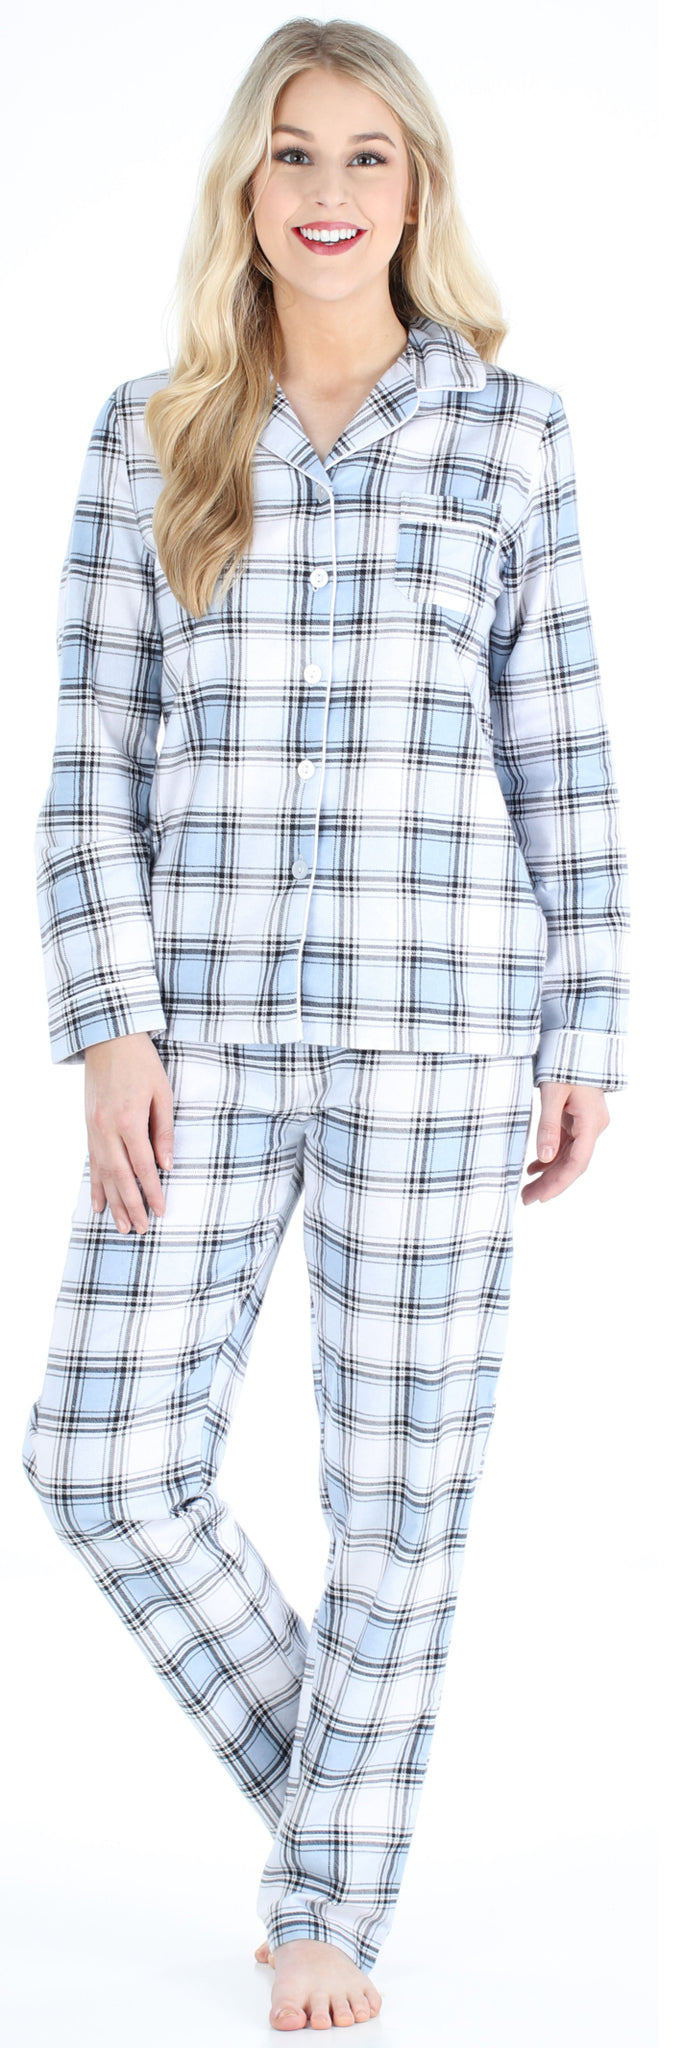 nightwear,for the holidays